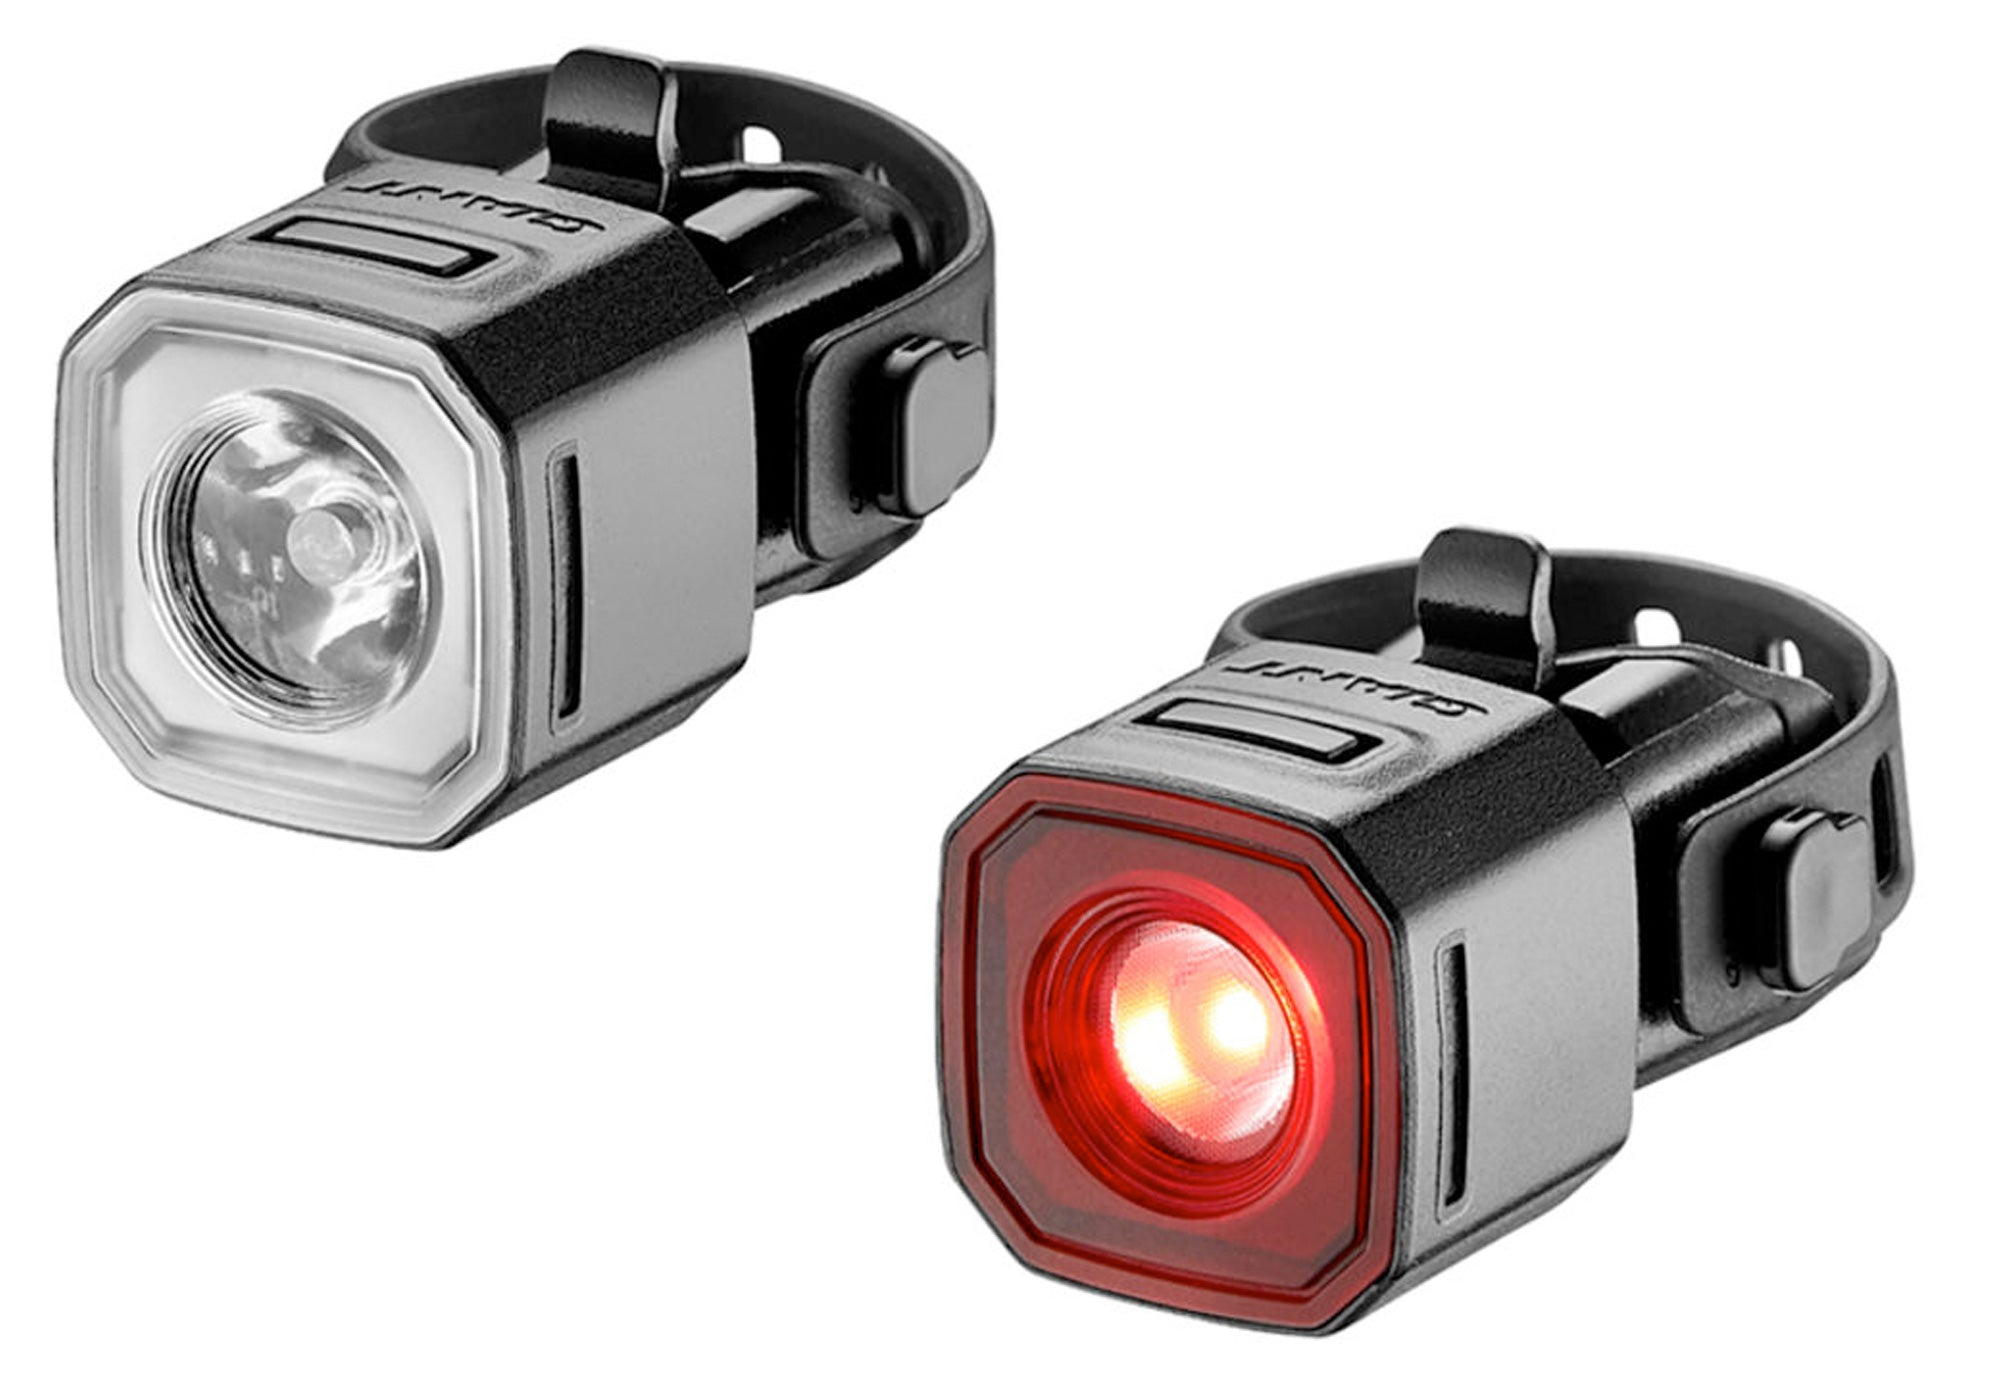 Giant Recon HL100 & TL100 Front/Rear Light Set, Woolys Wheels, Sydney